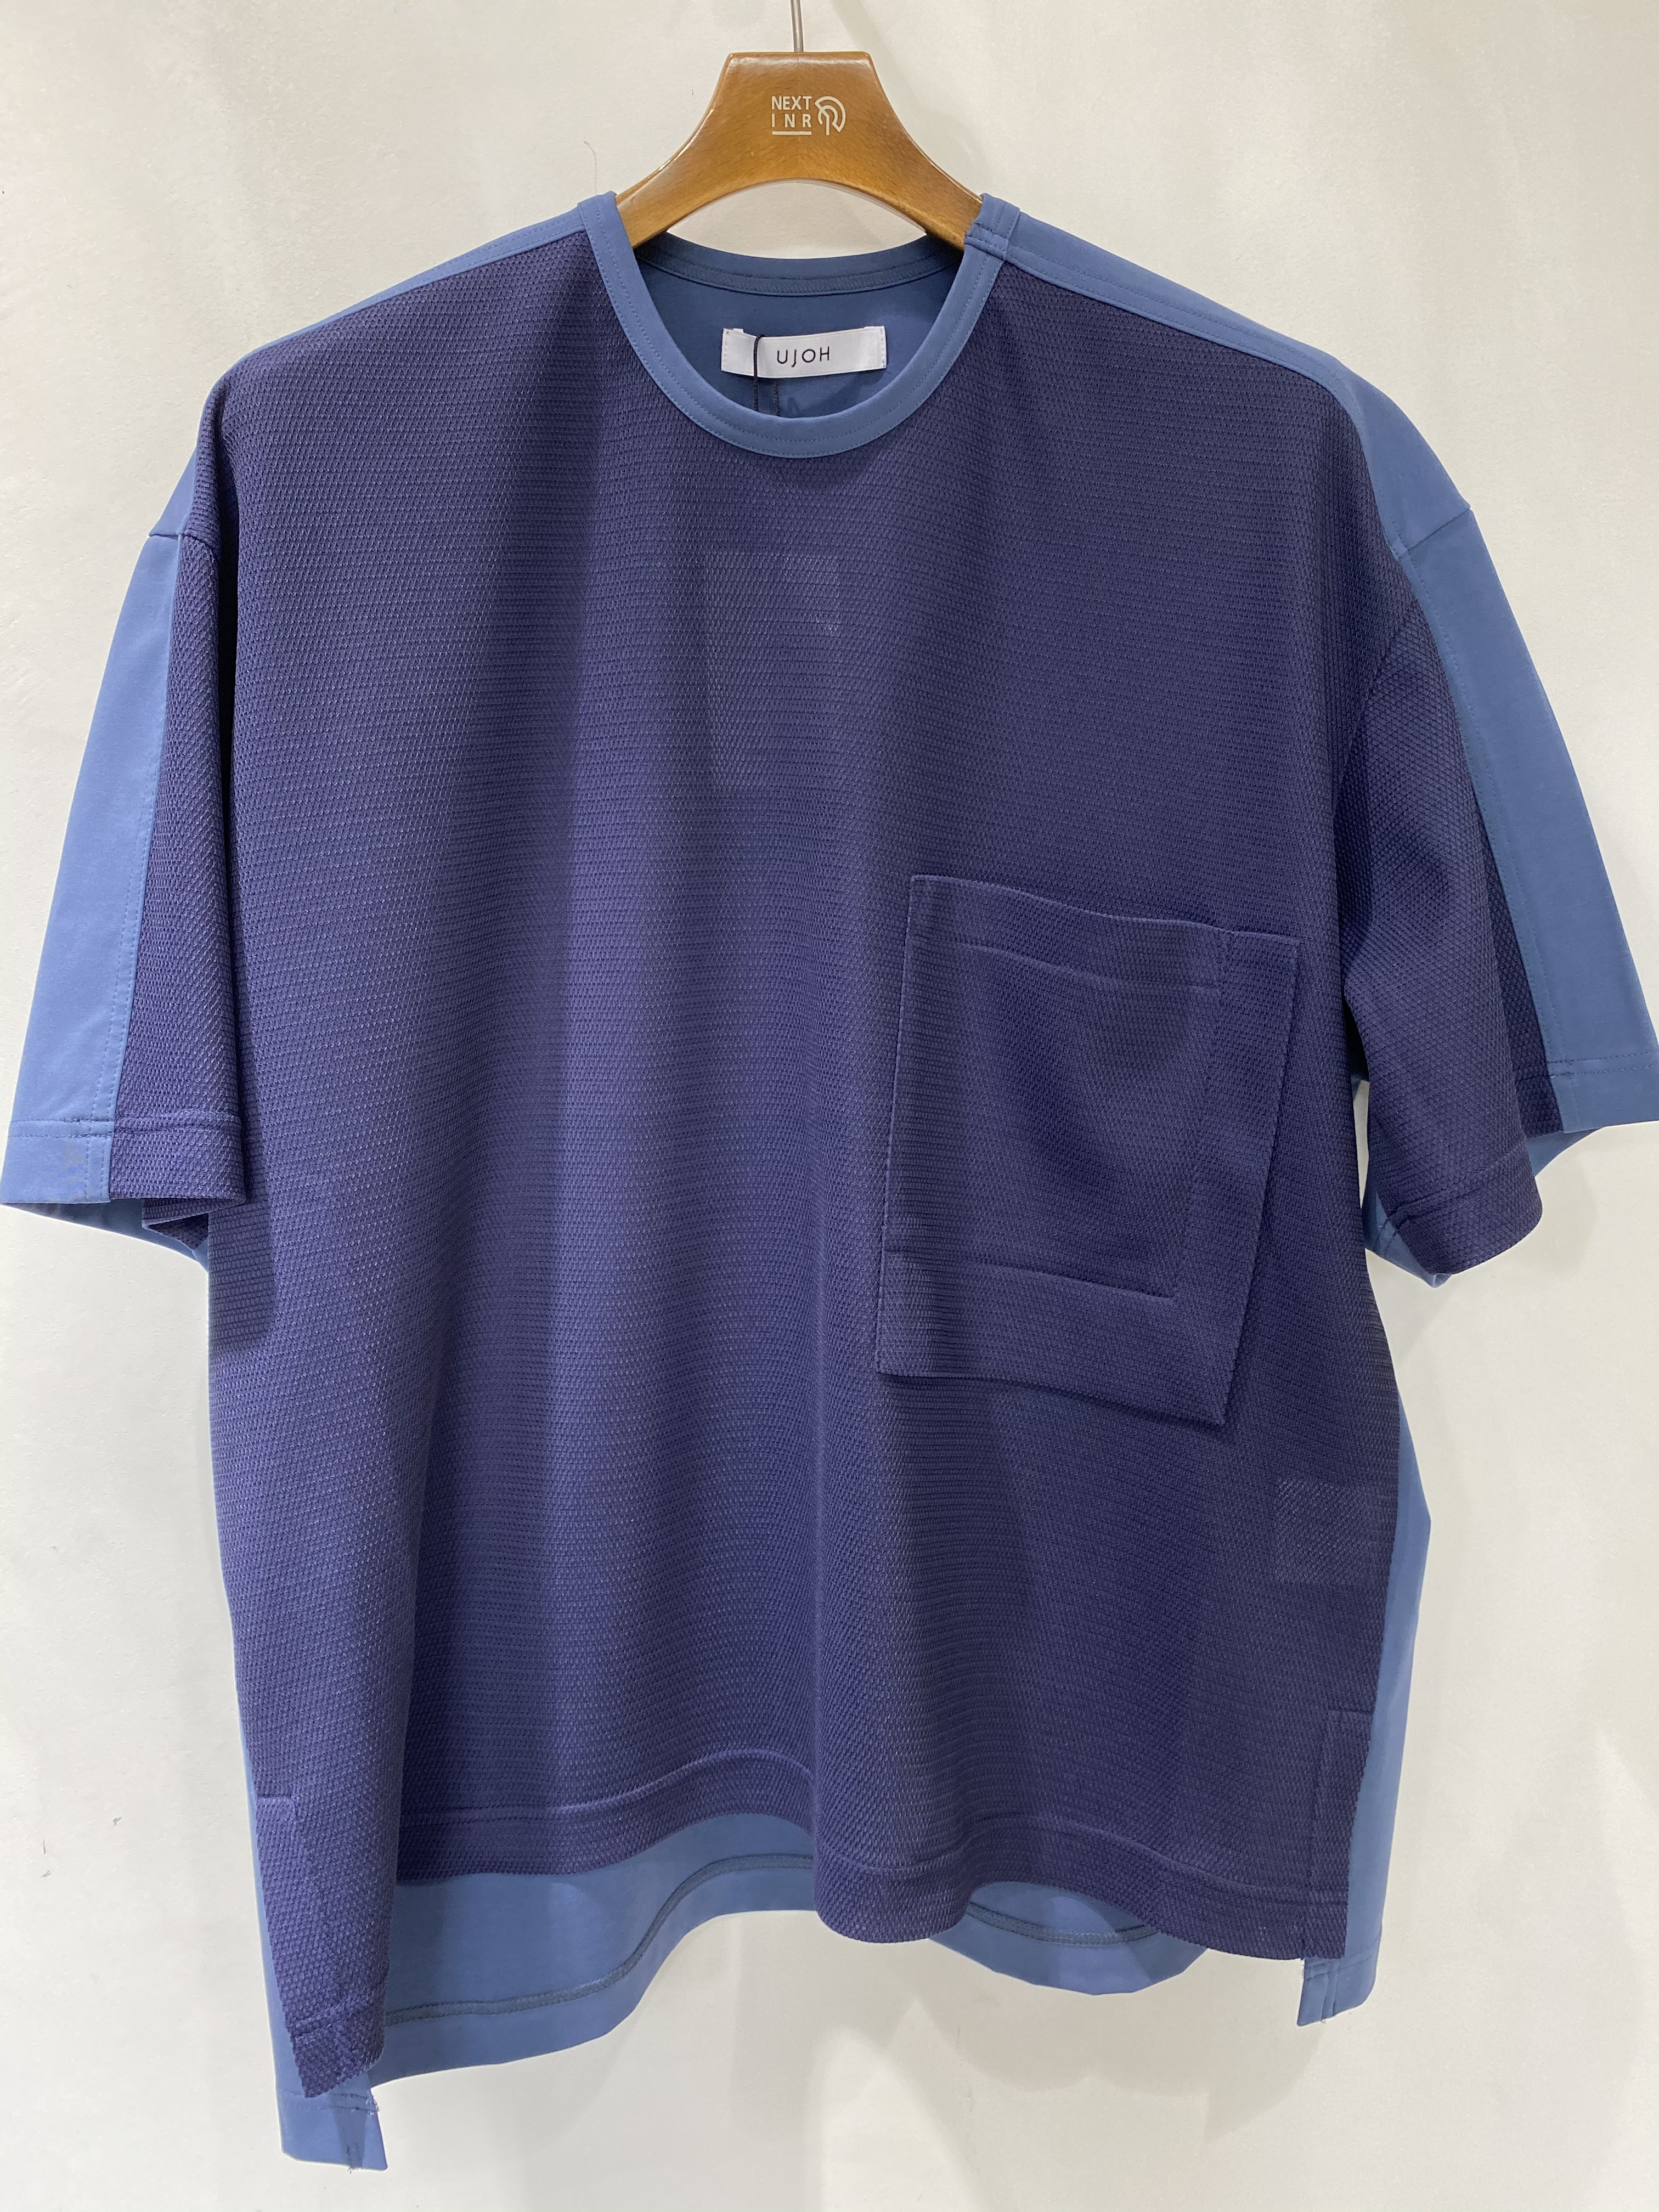 【UJOH】M781-T53-009